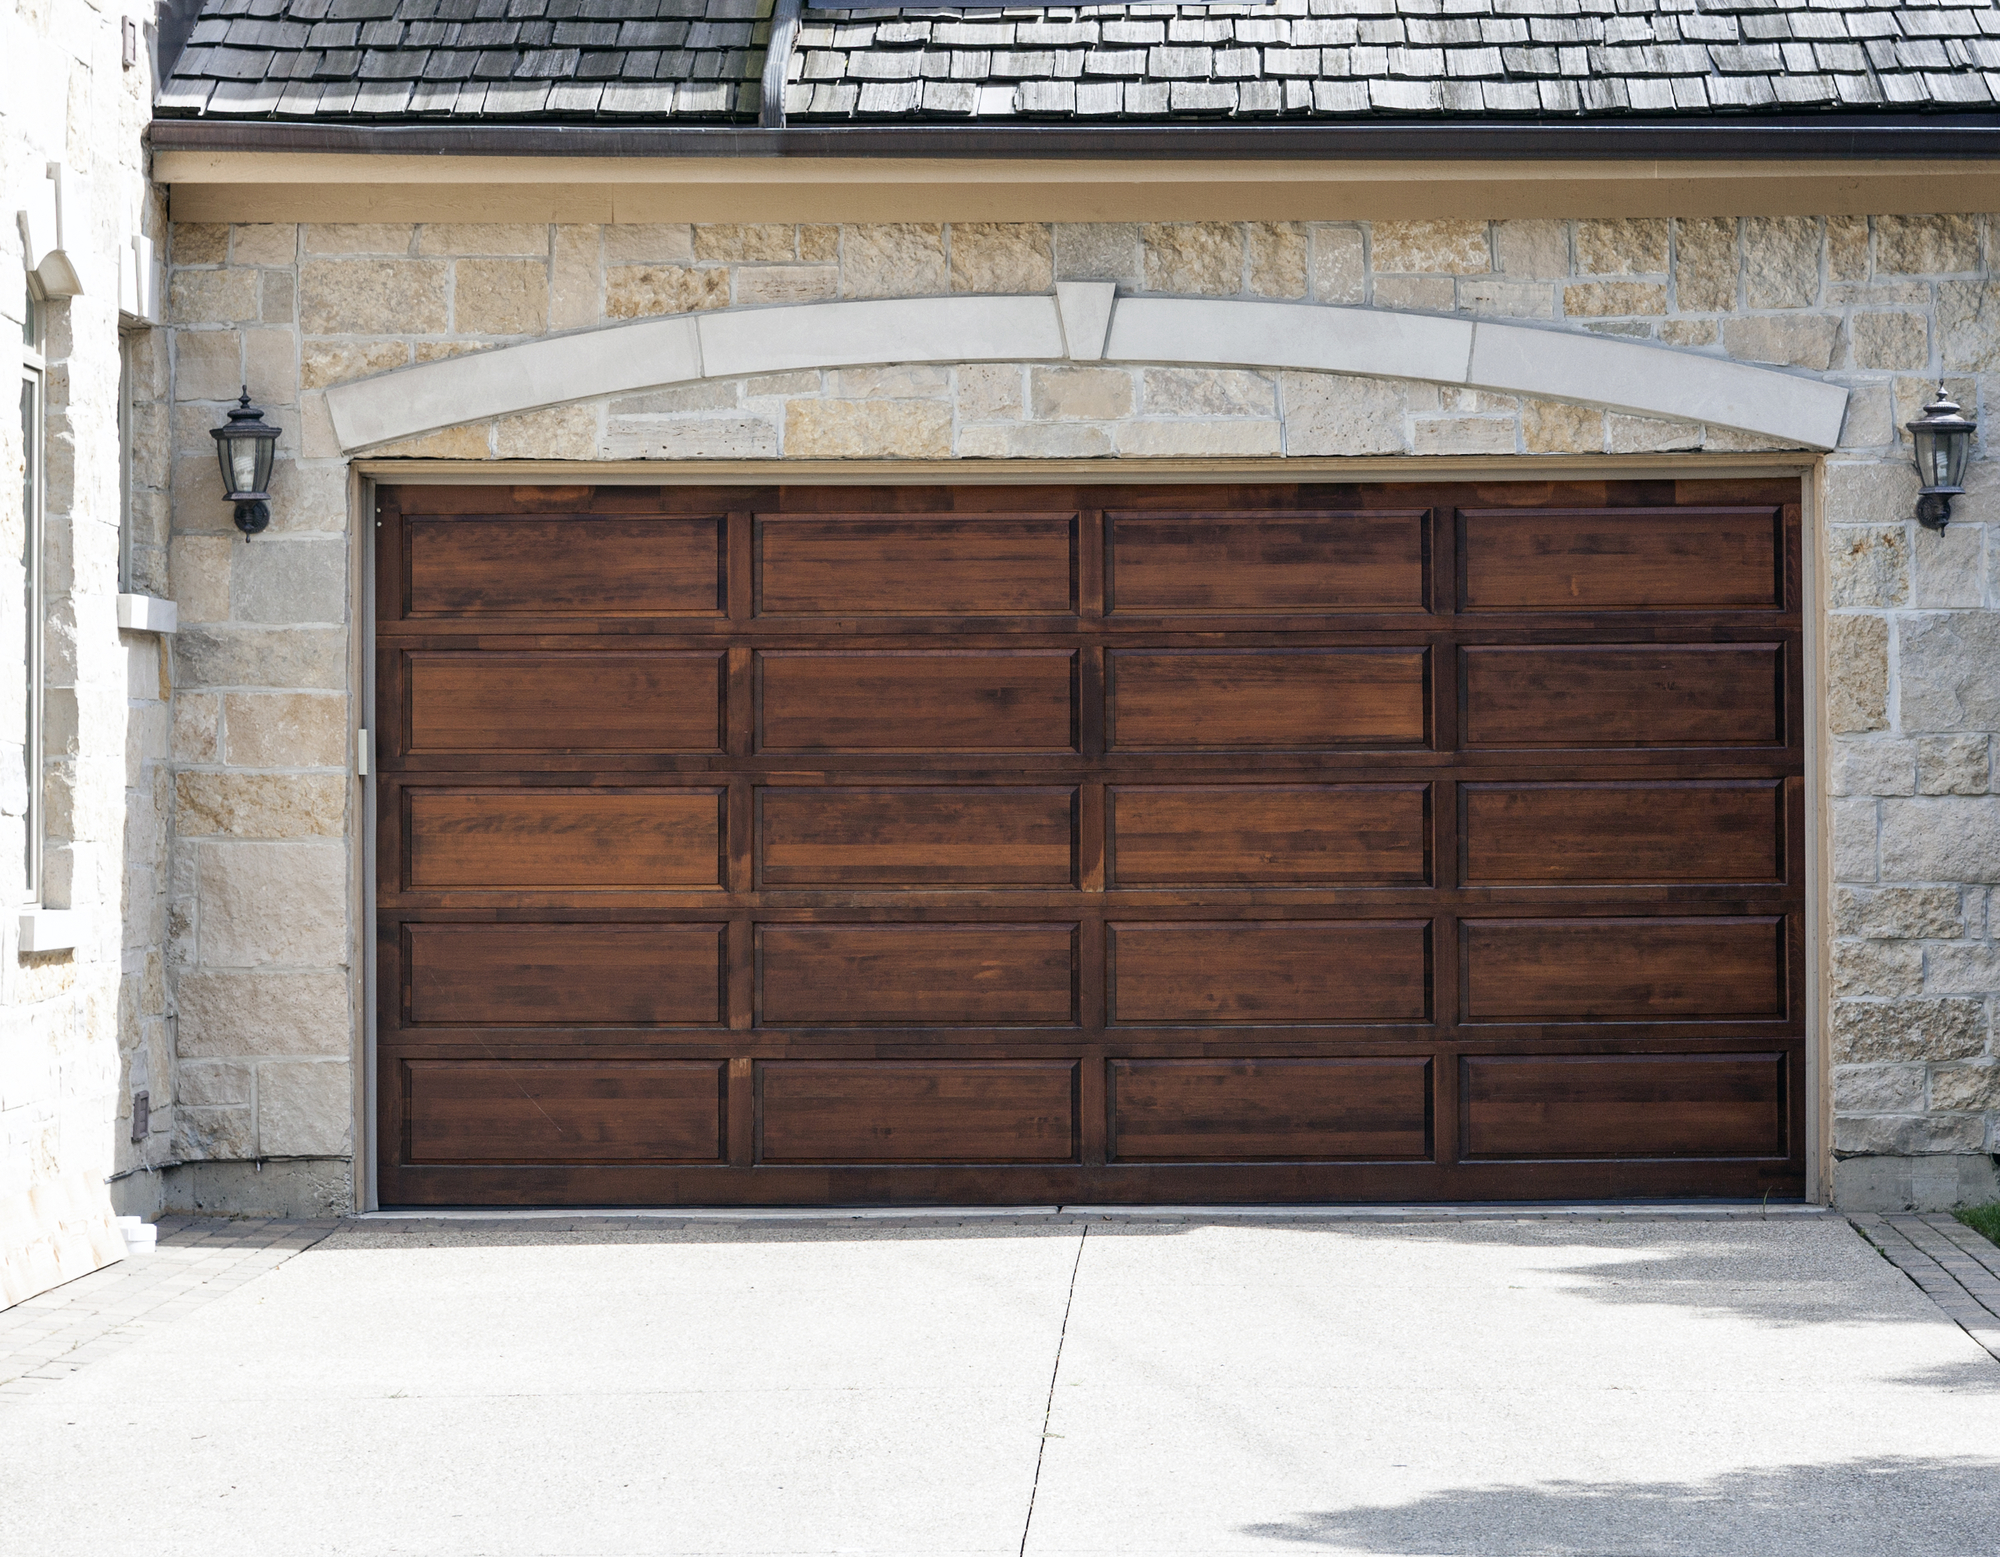 Ways to improve the aesthetics of your   garage door